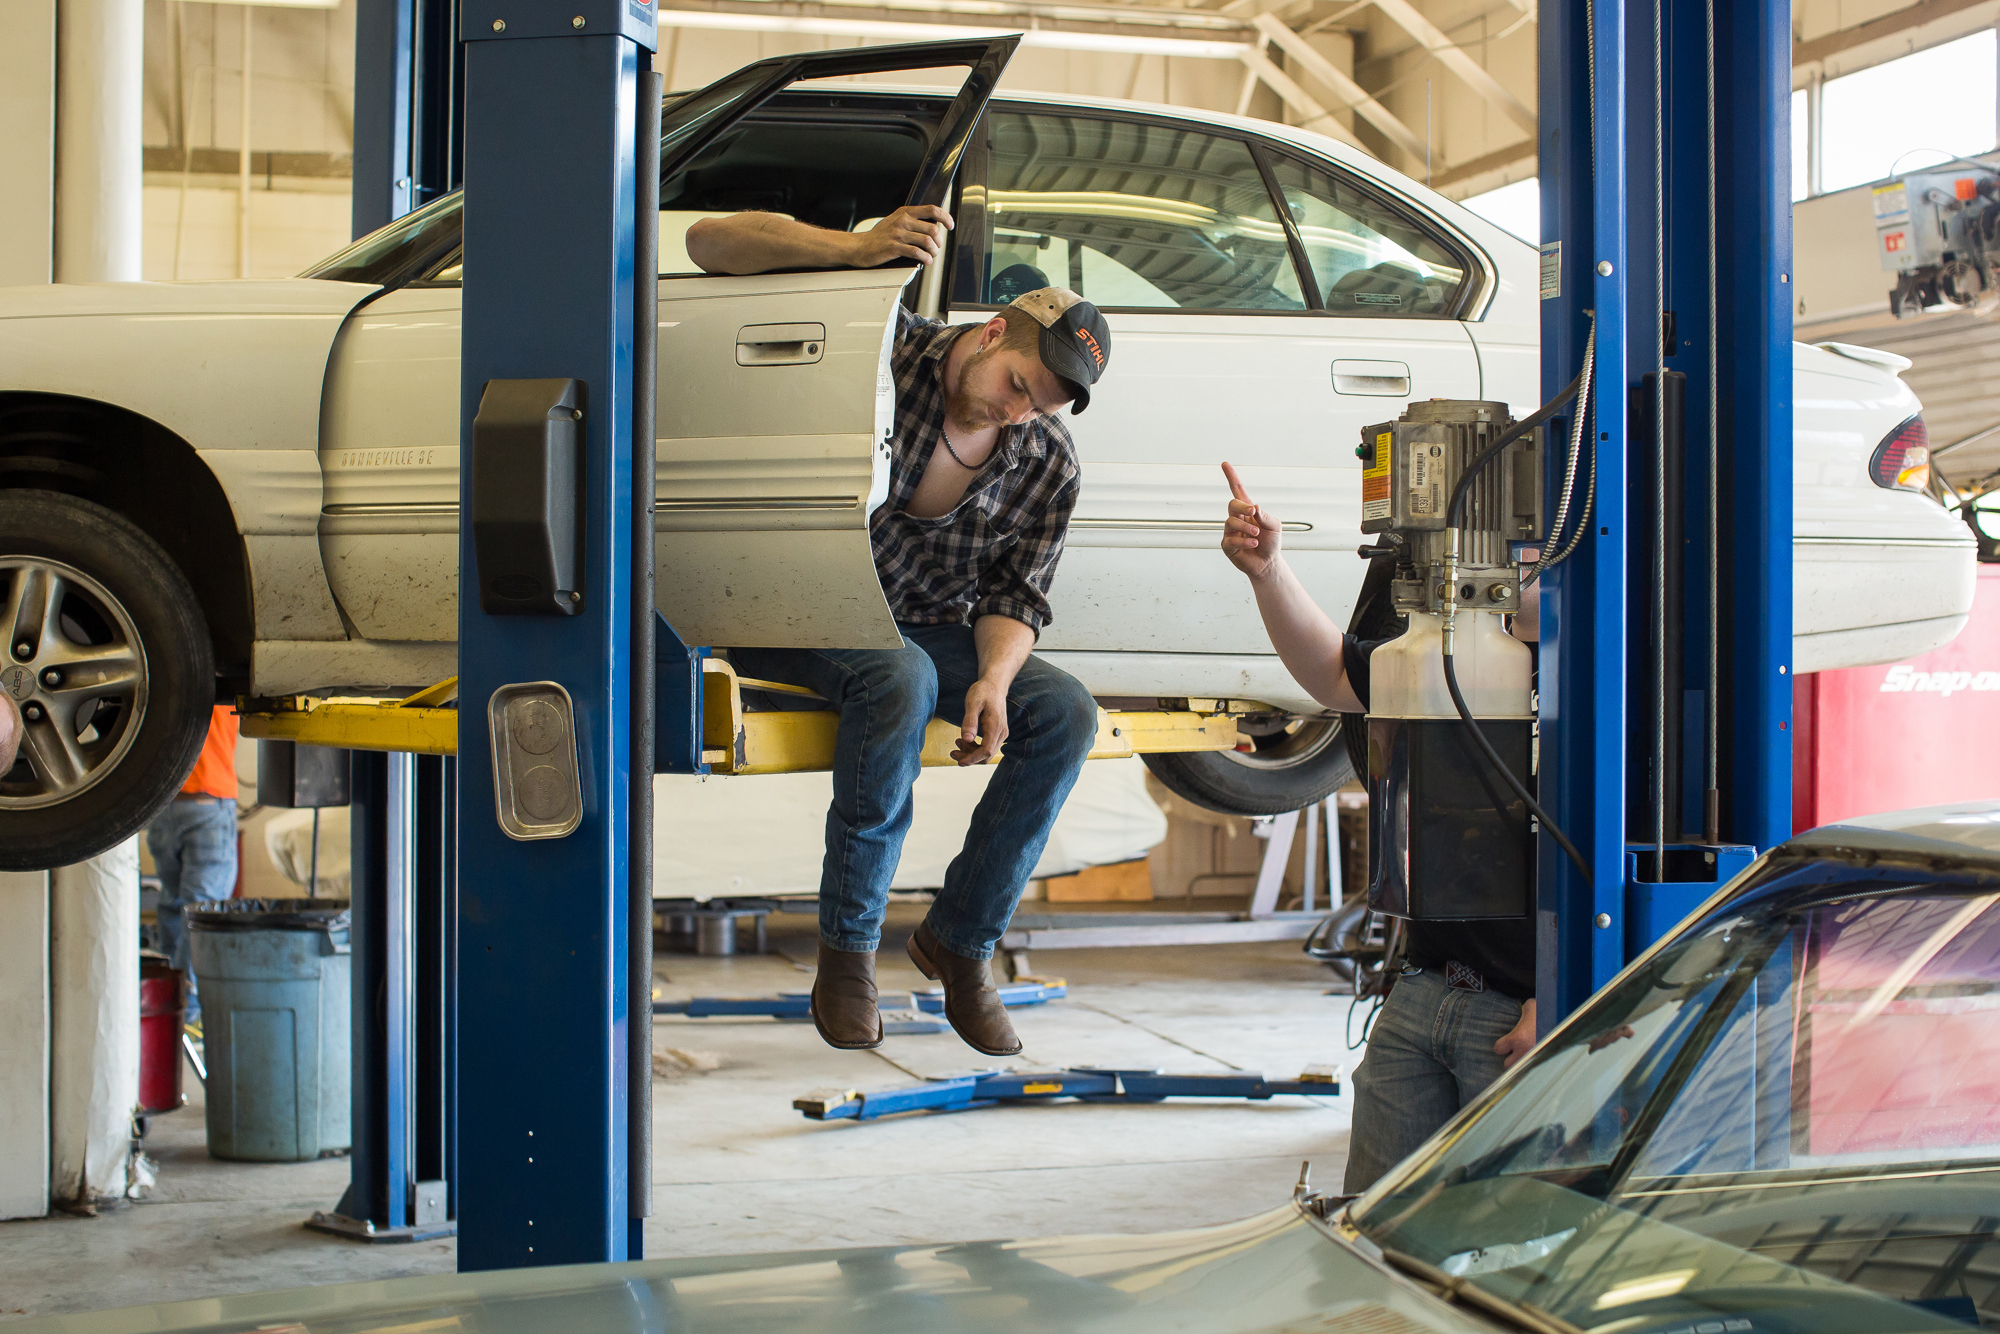 Surry Community College student Thomas Bartley relaxes between lessons in an Automotive Technology class.